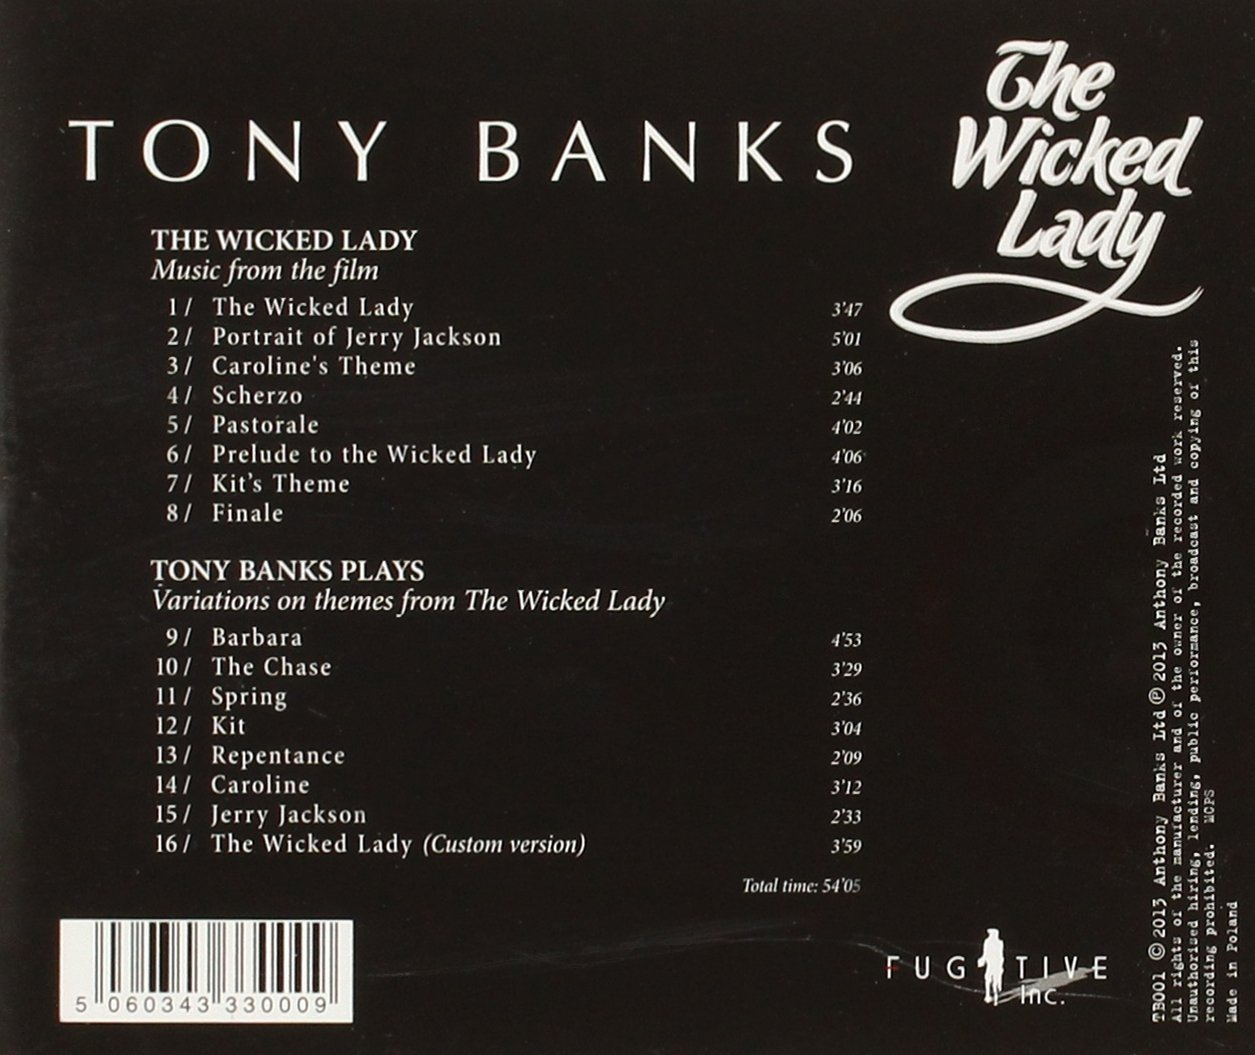 The Wicked Lady - PLUS Variations on themes from The Wicked Lady by Tony Banks: Tony Banks & The National Philharmonic Orchestra: Amazon.es: Música